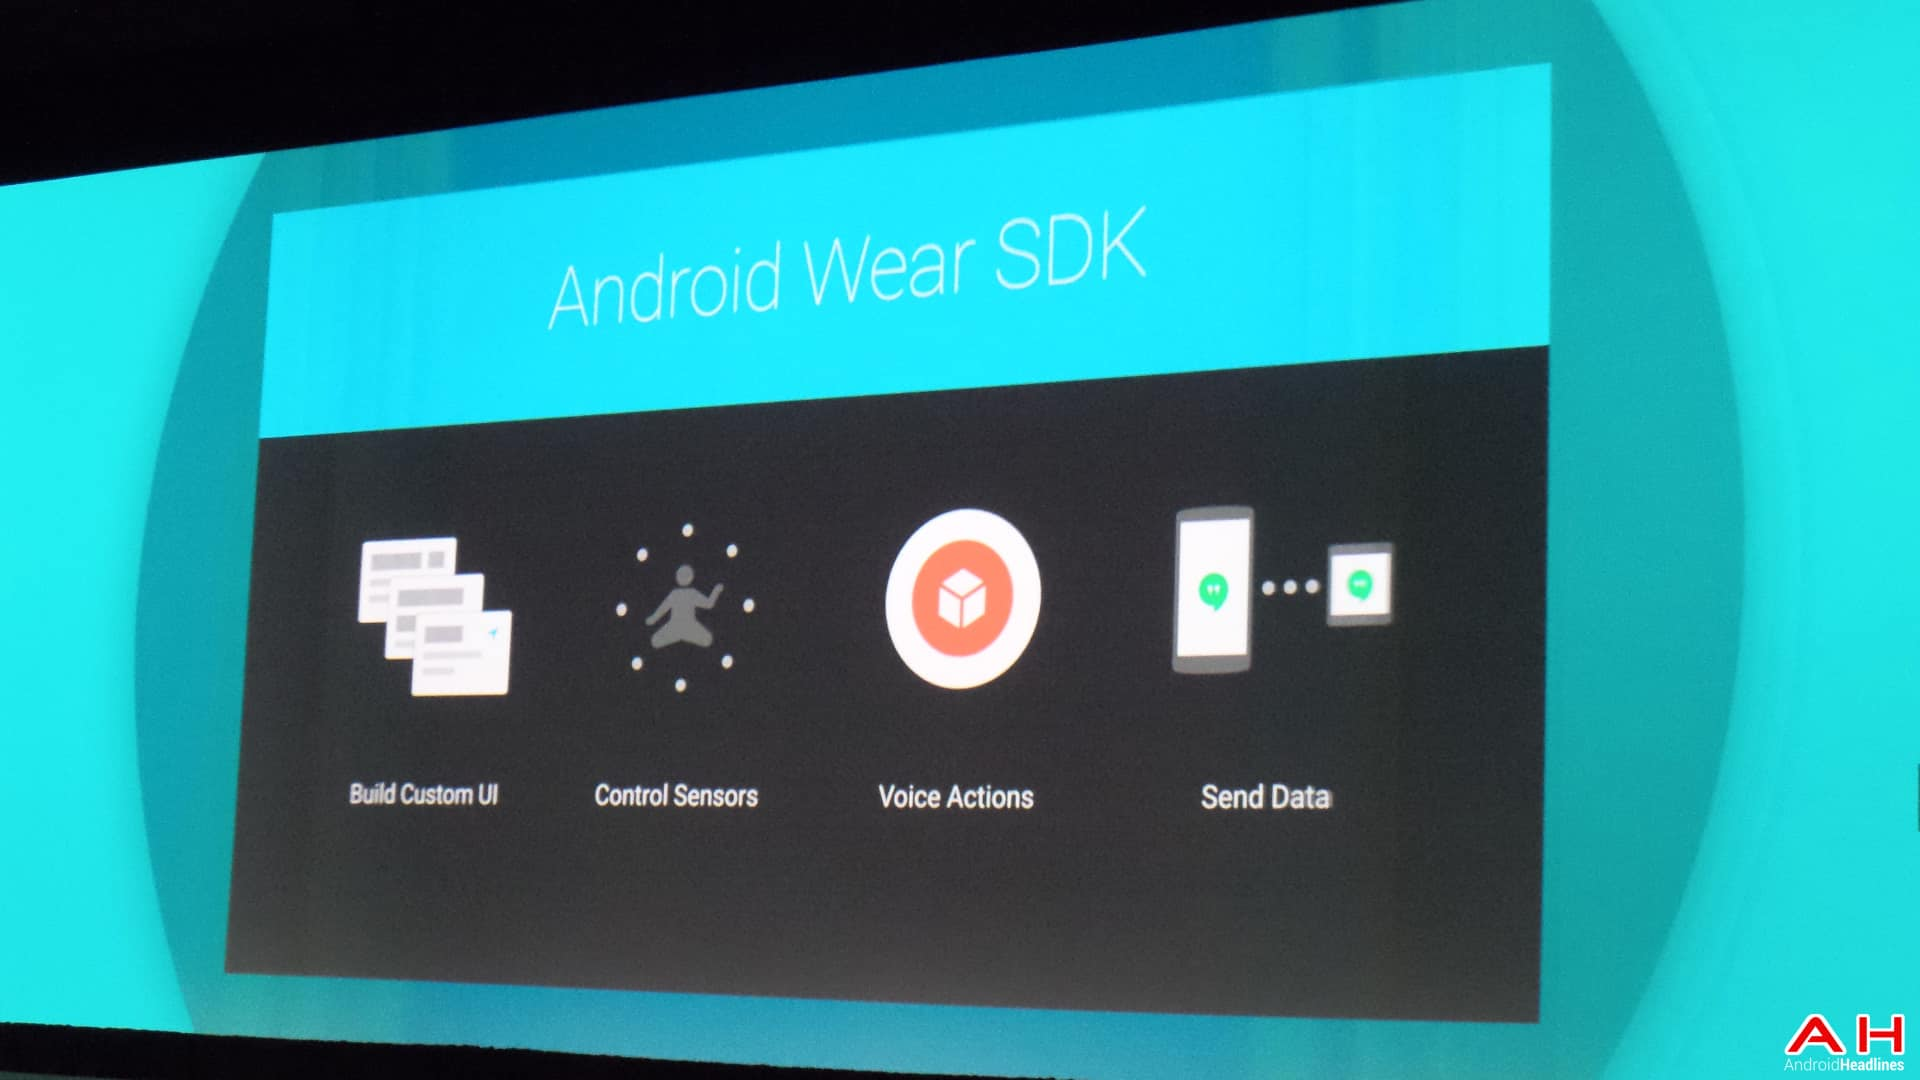 AH Google IO 2014 305 of 18 Android Wear